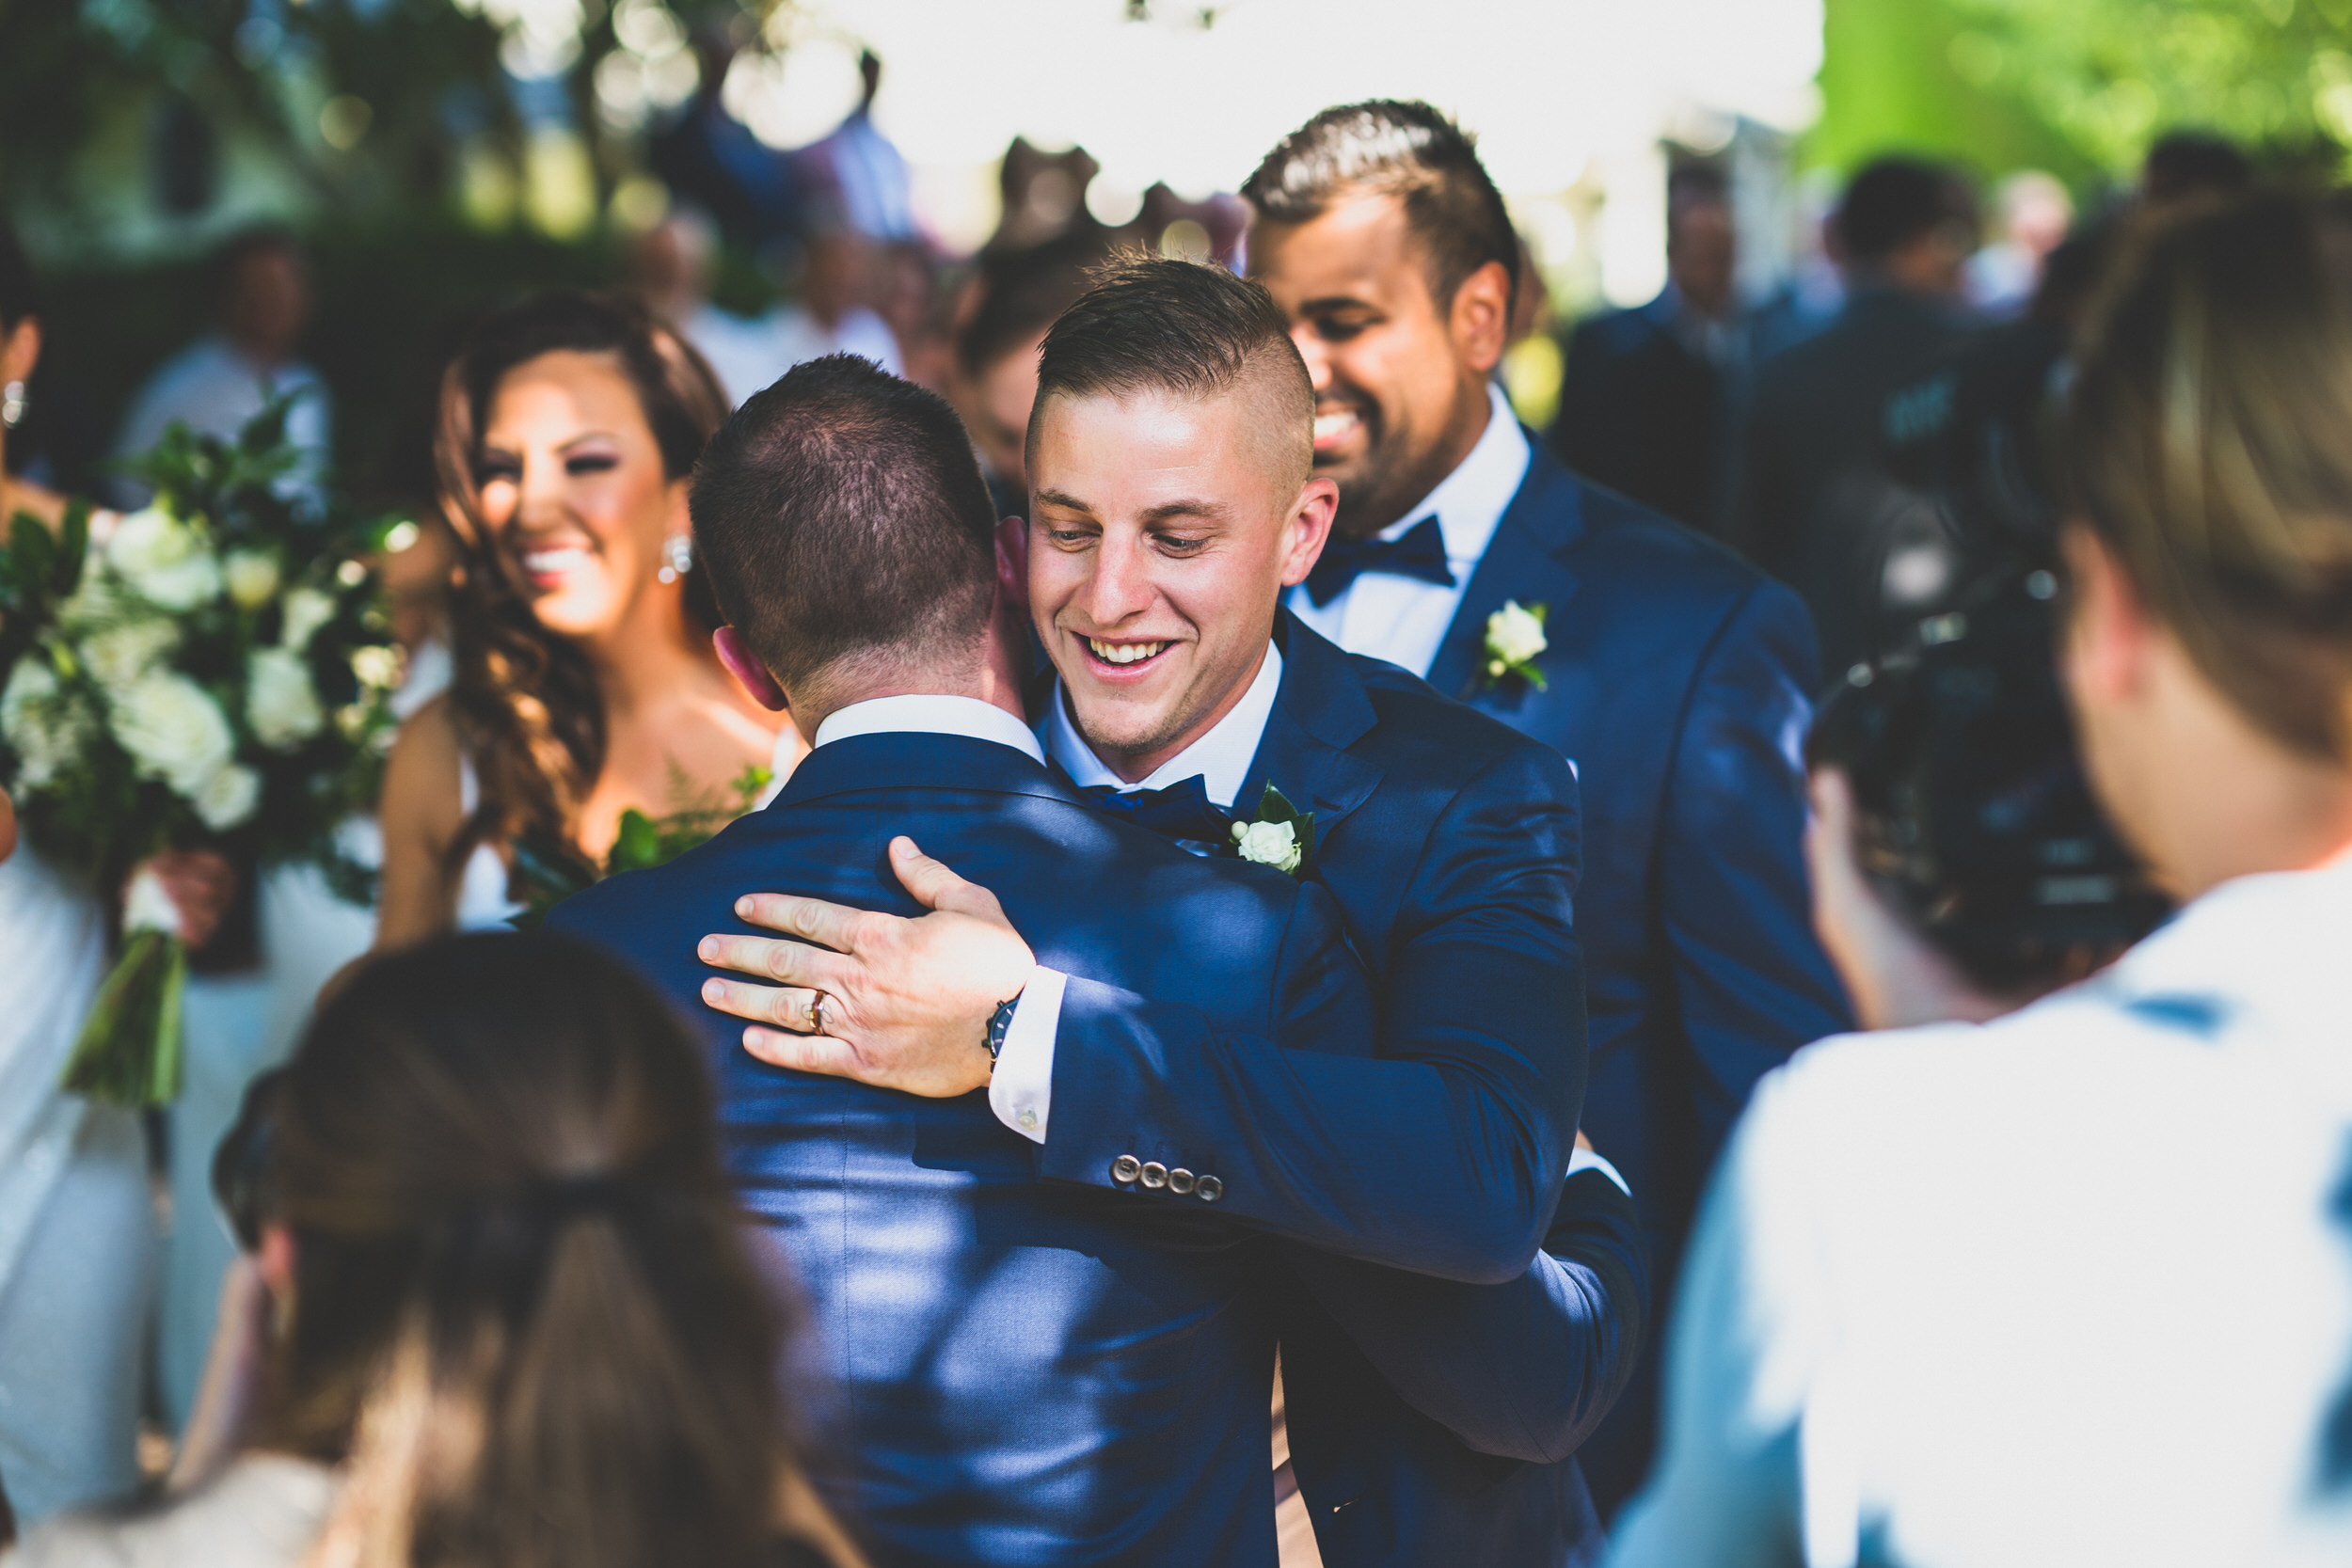 The groom's best friend and best man congratulating him